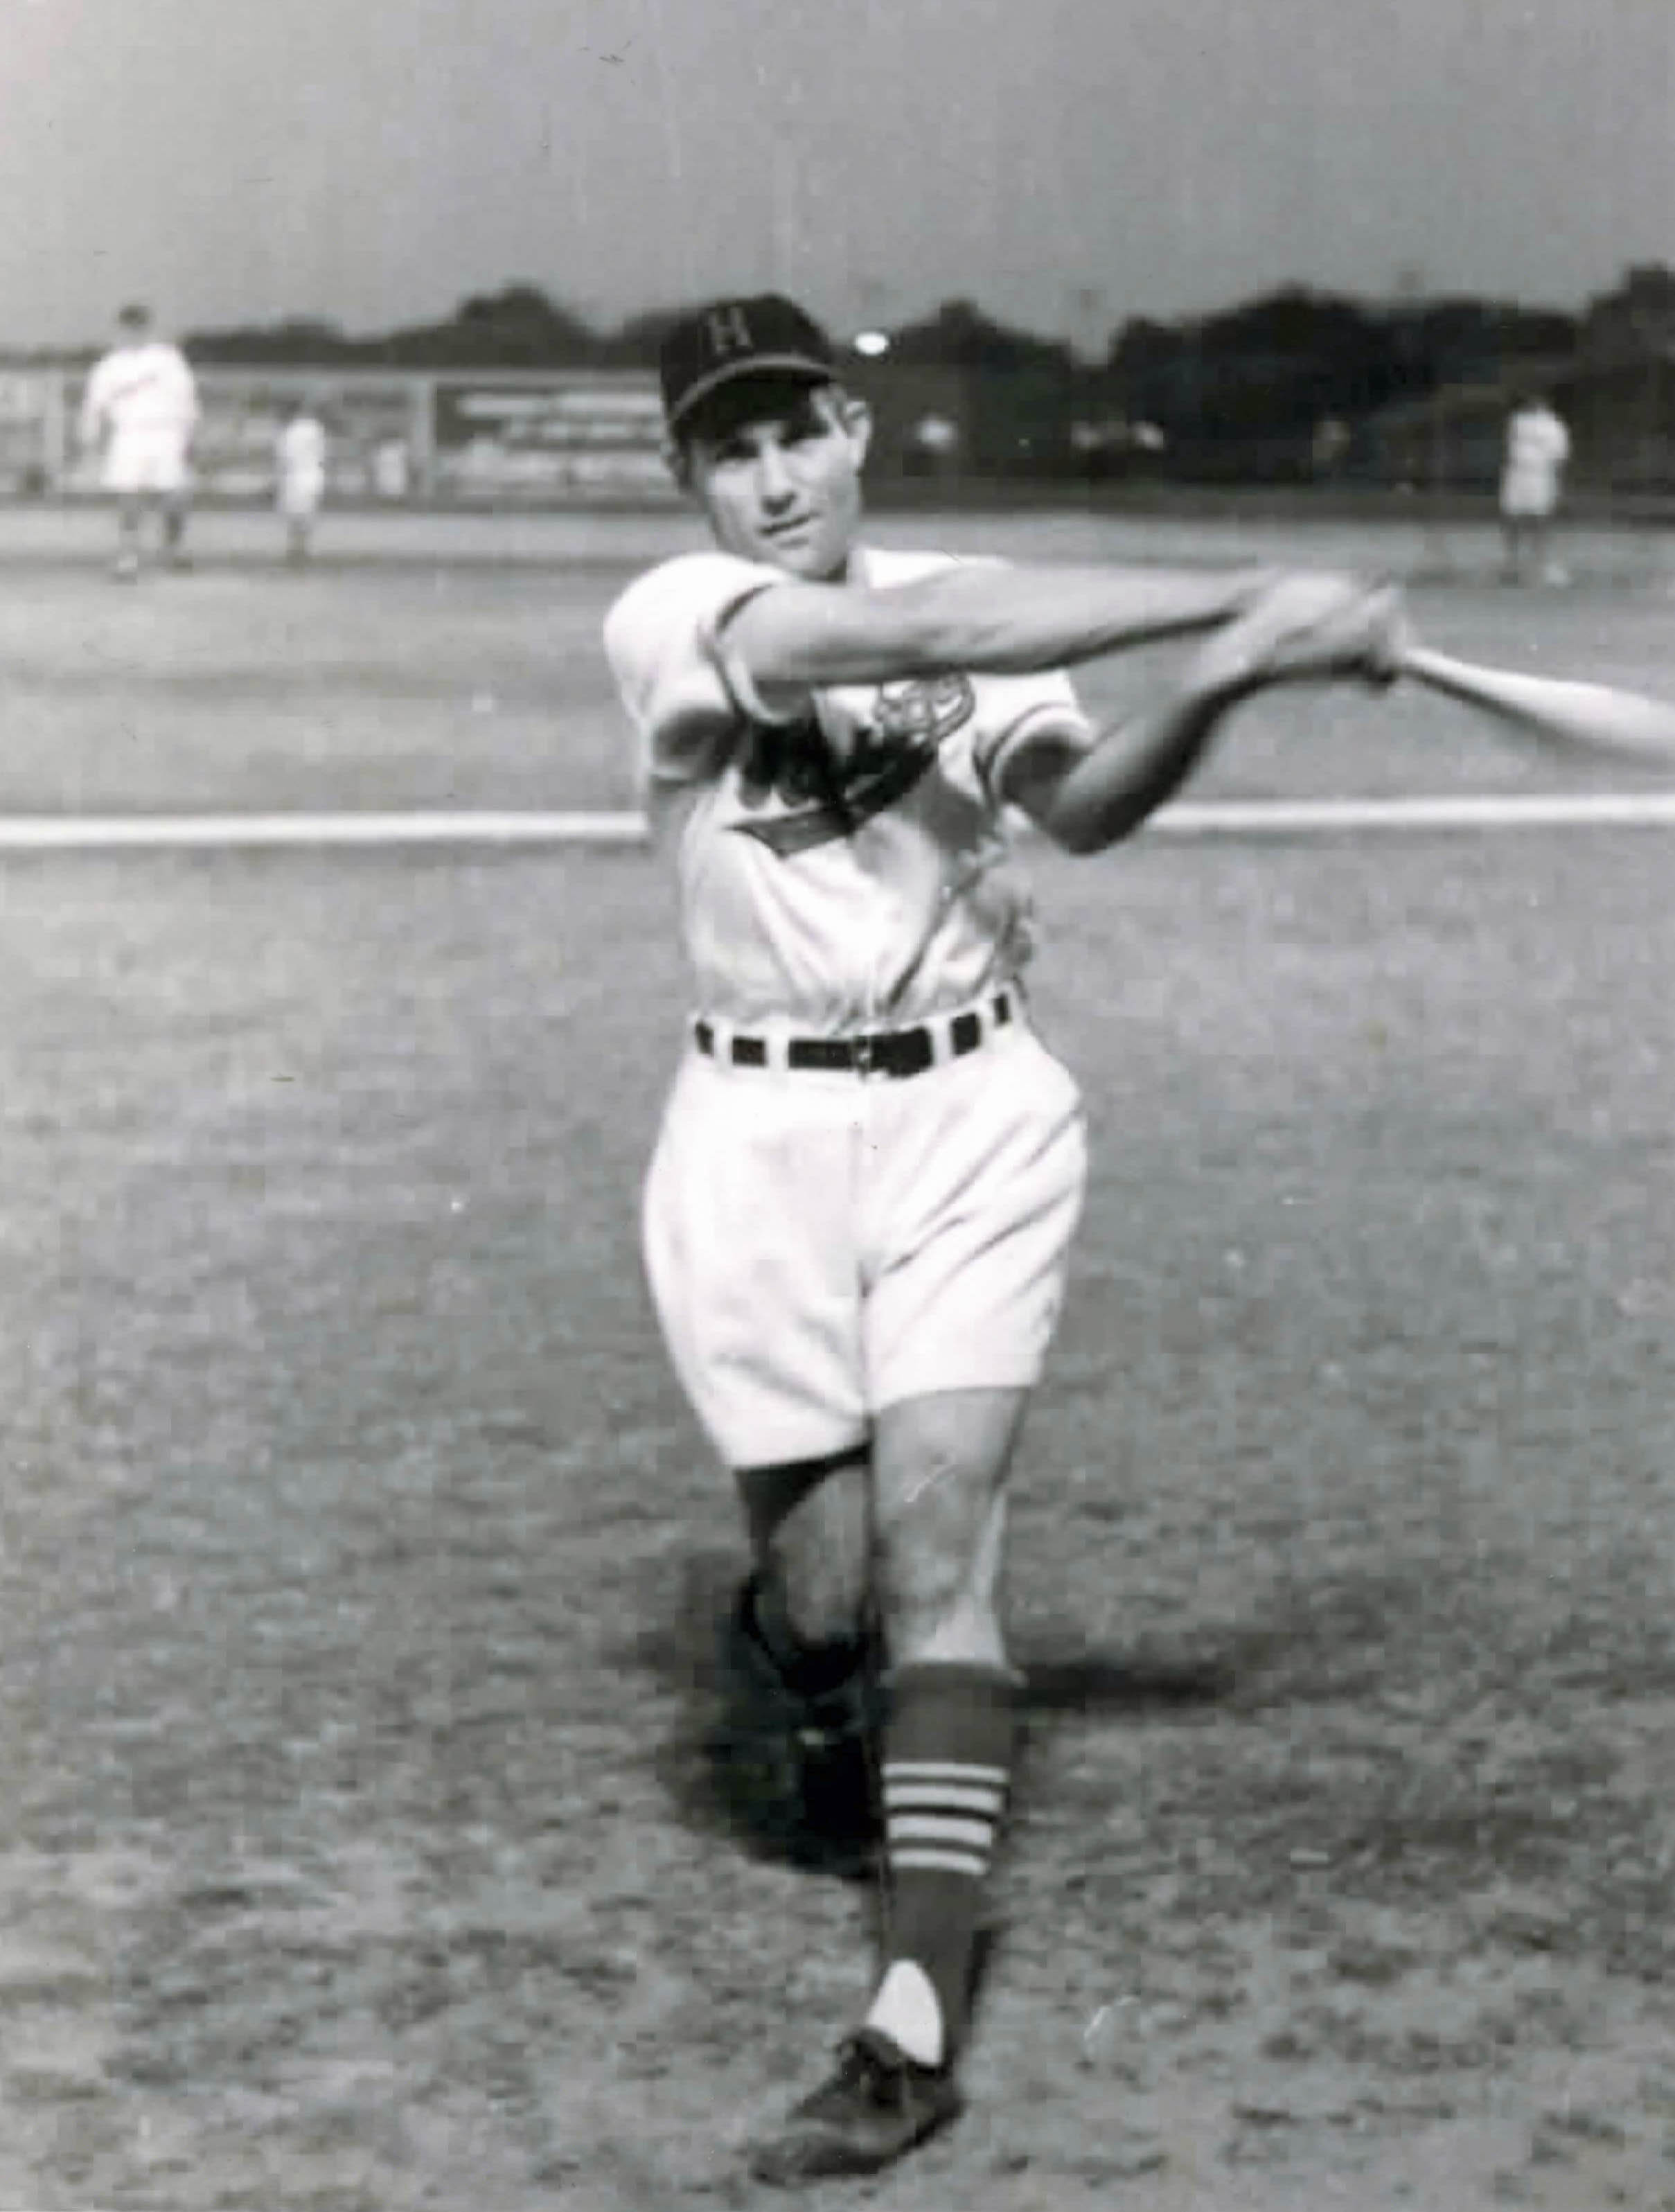 Jerry Witte in Shorts